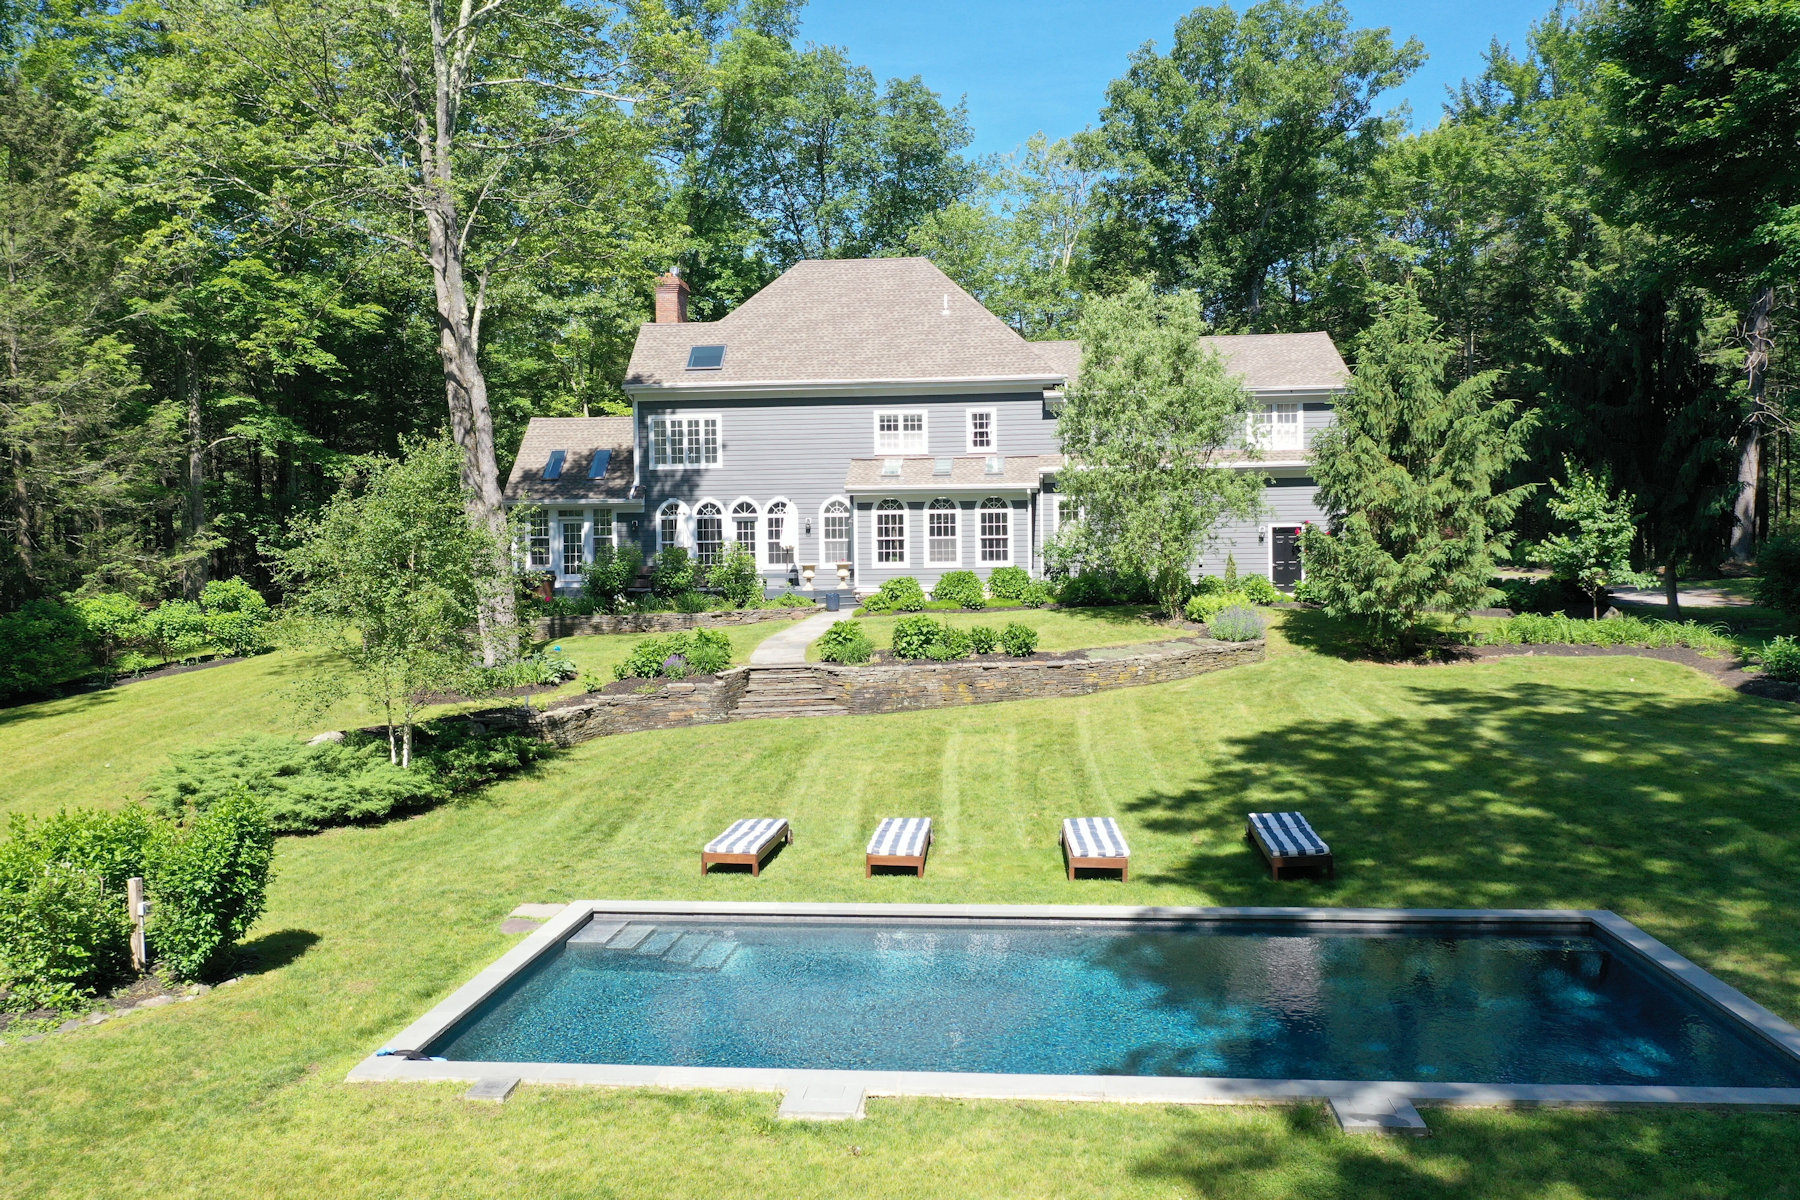 Single Family Homes for Active at Elegant Renovated Lakefront Colonial 37 Blue Heron Drive Marbletown, New York 12401 United States